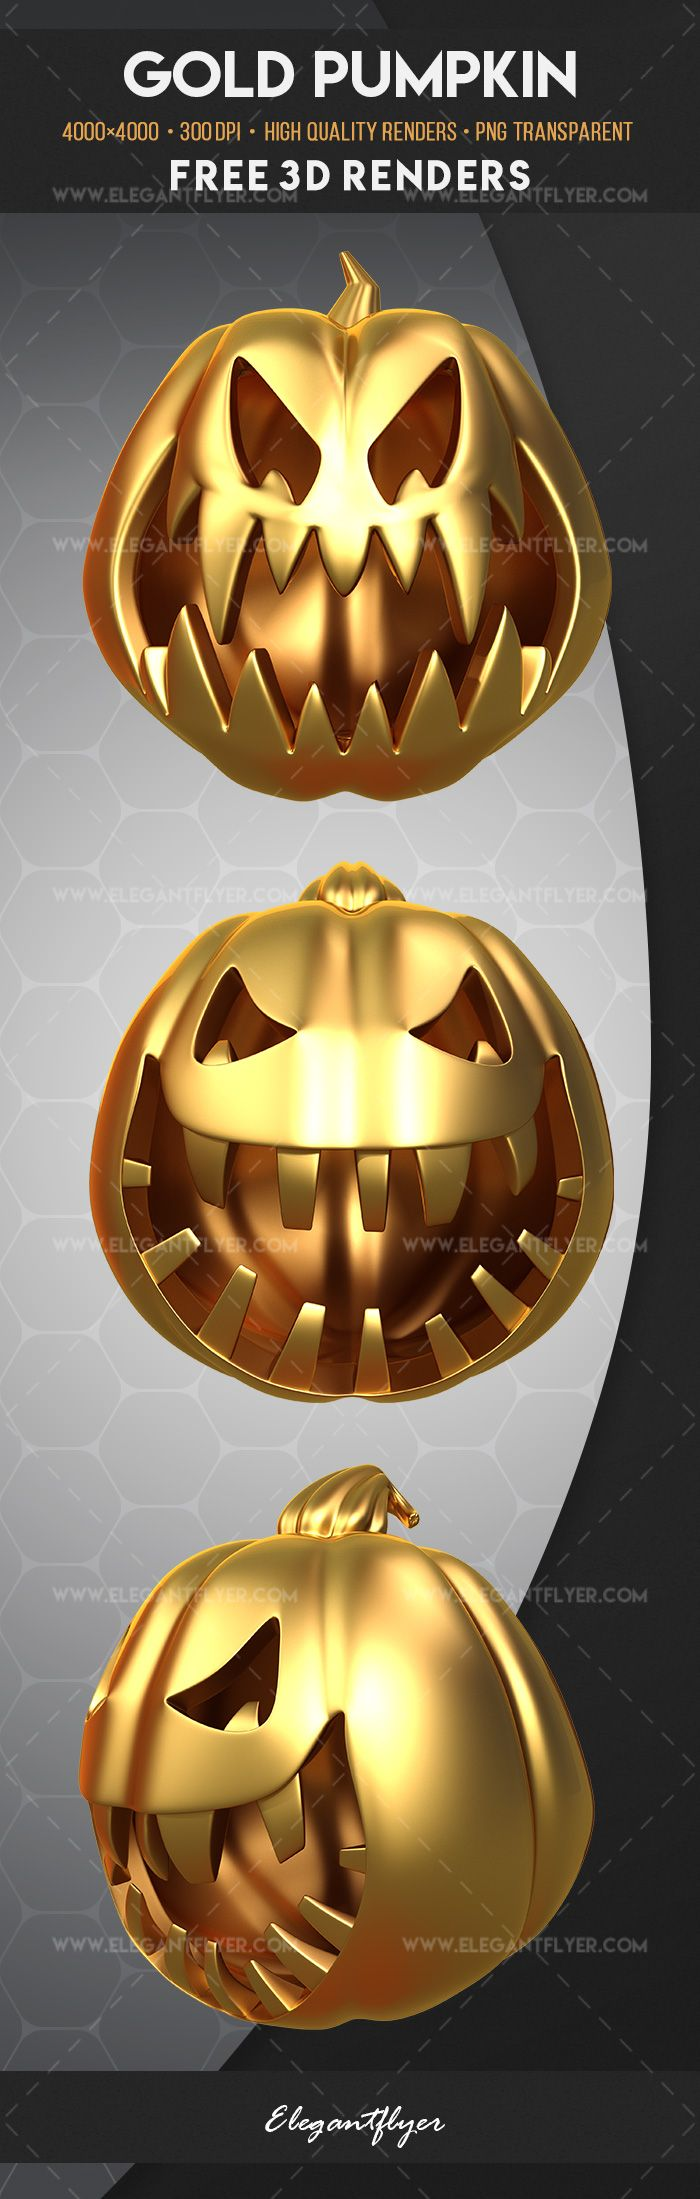 Gold Pumpkin – Free 3d Render Templates